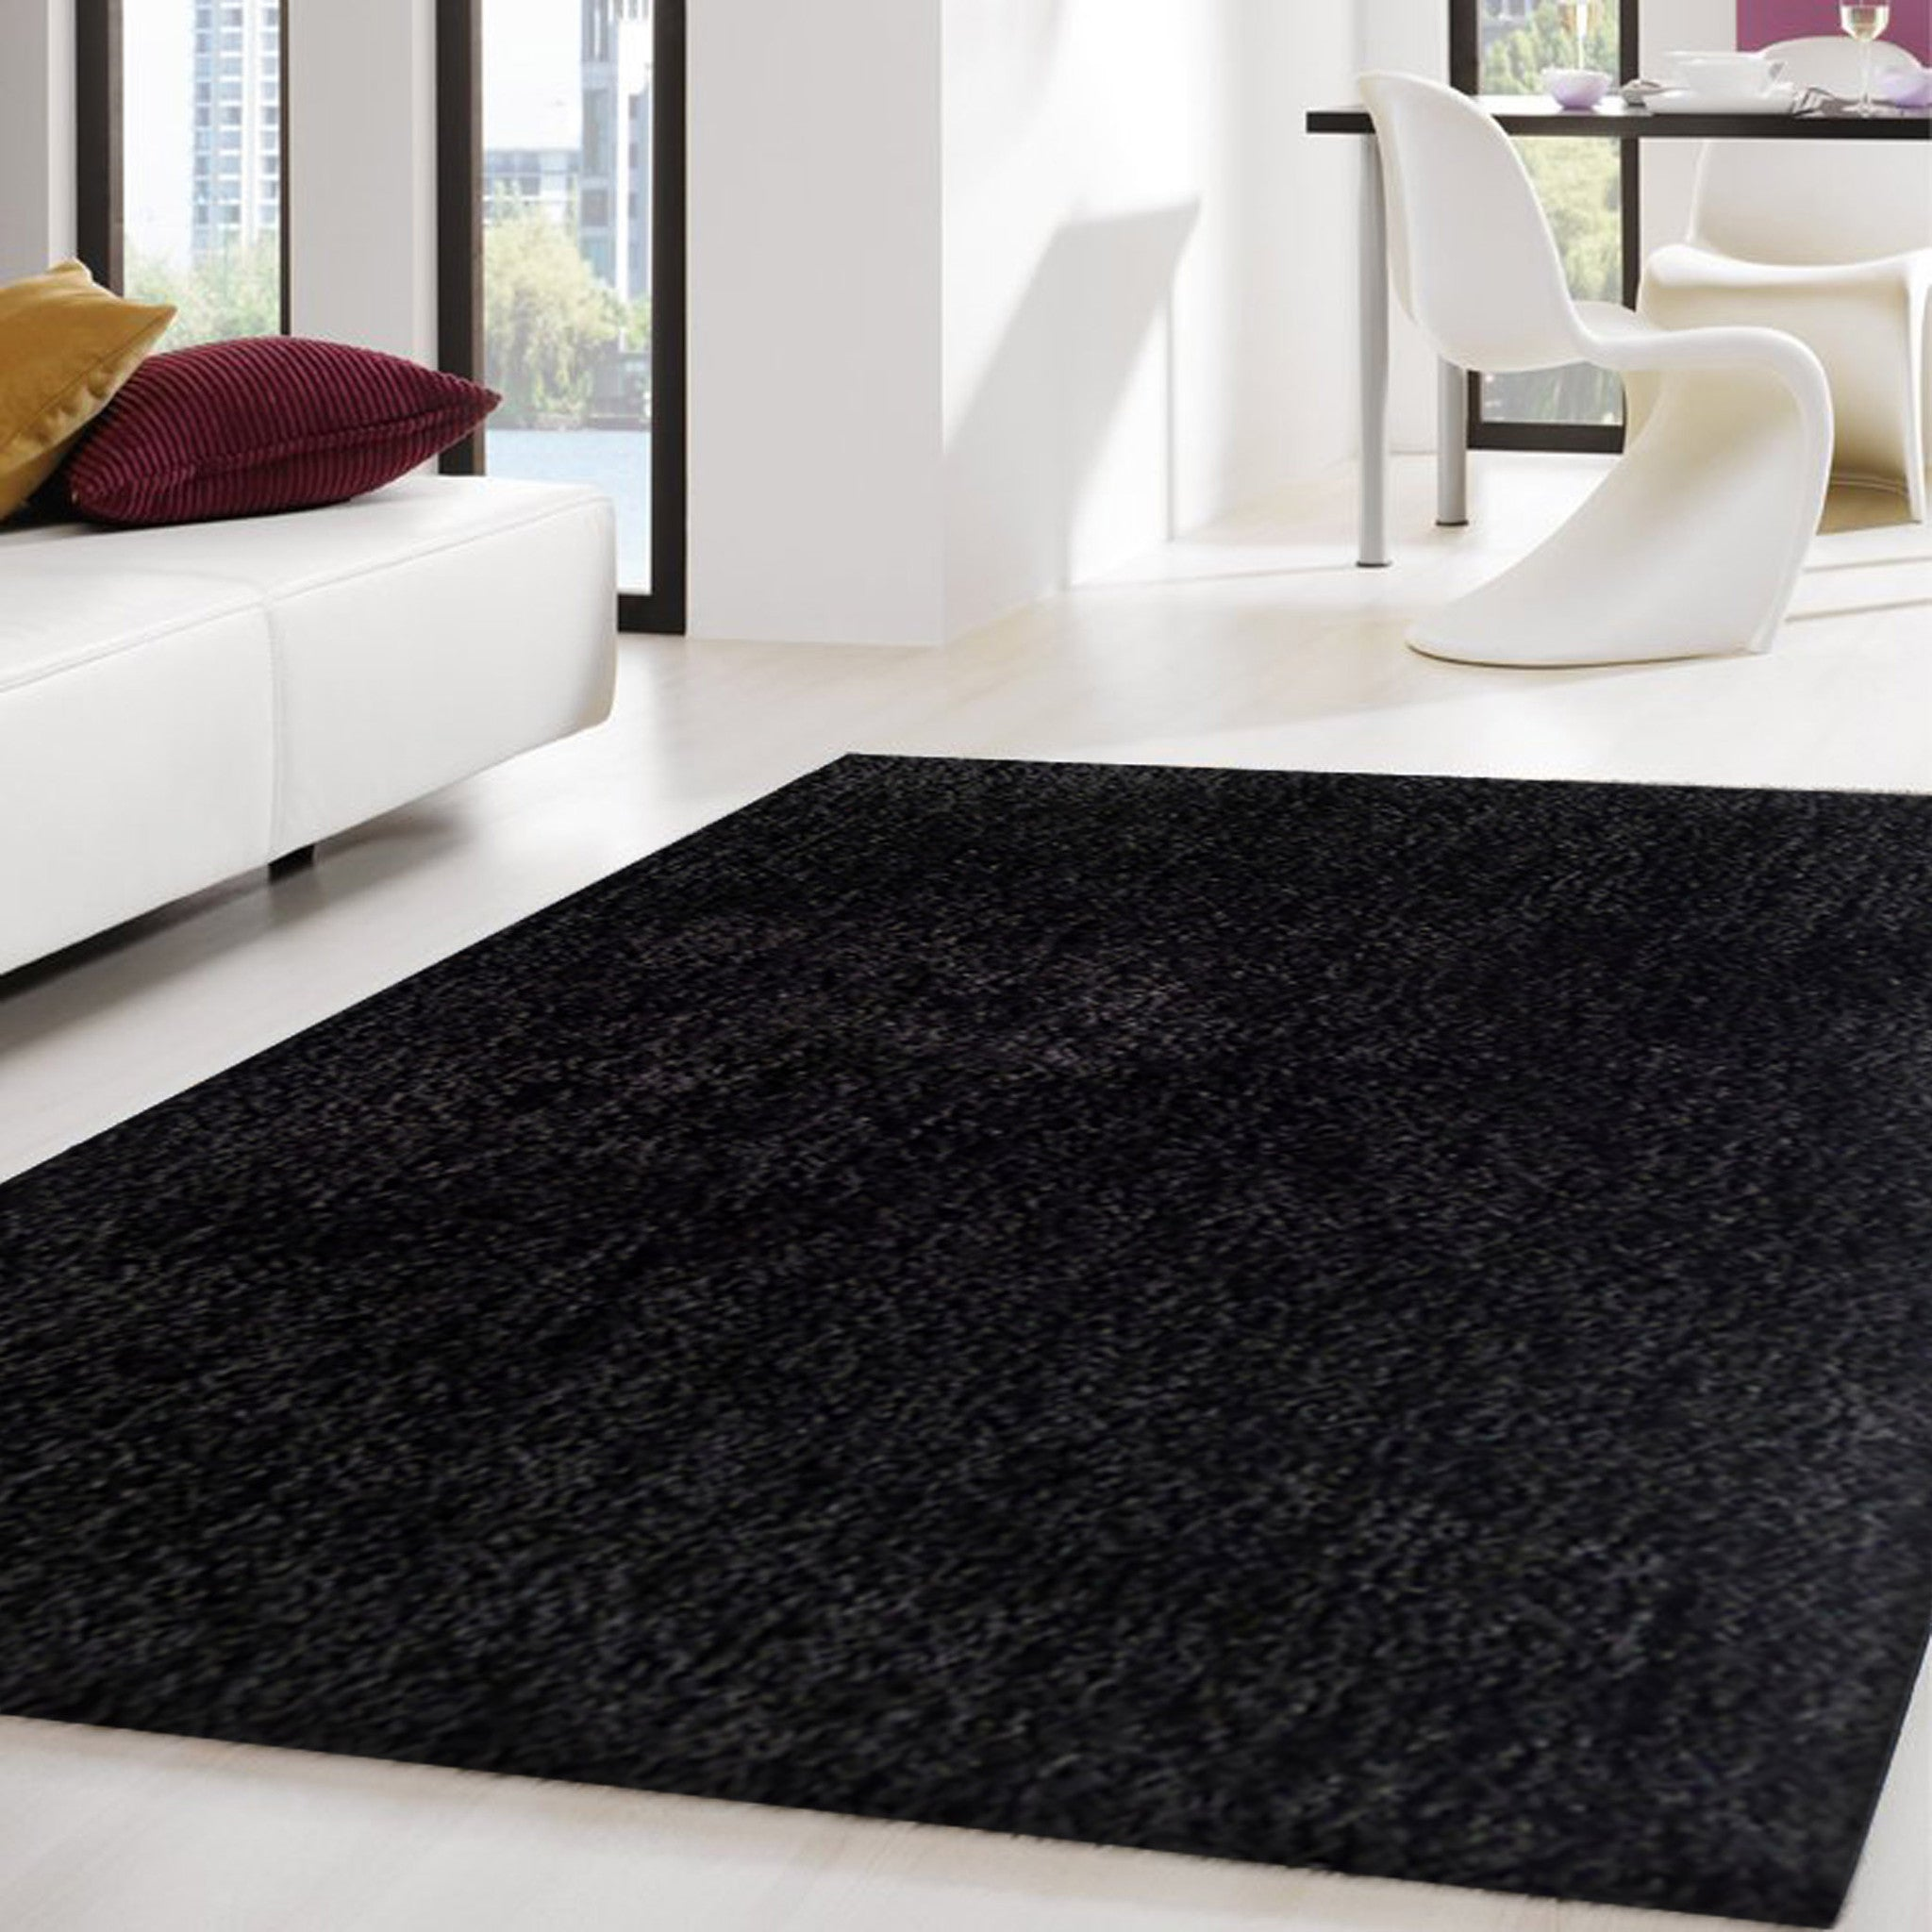 Awesome Hand Tufted Solid Black Thick Plush Shag Area Rug